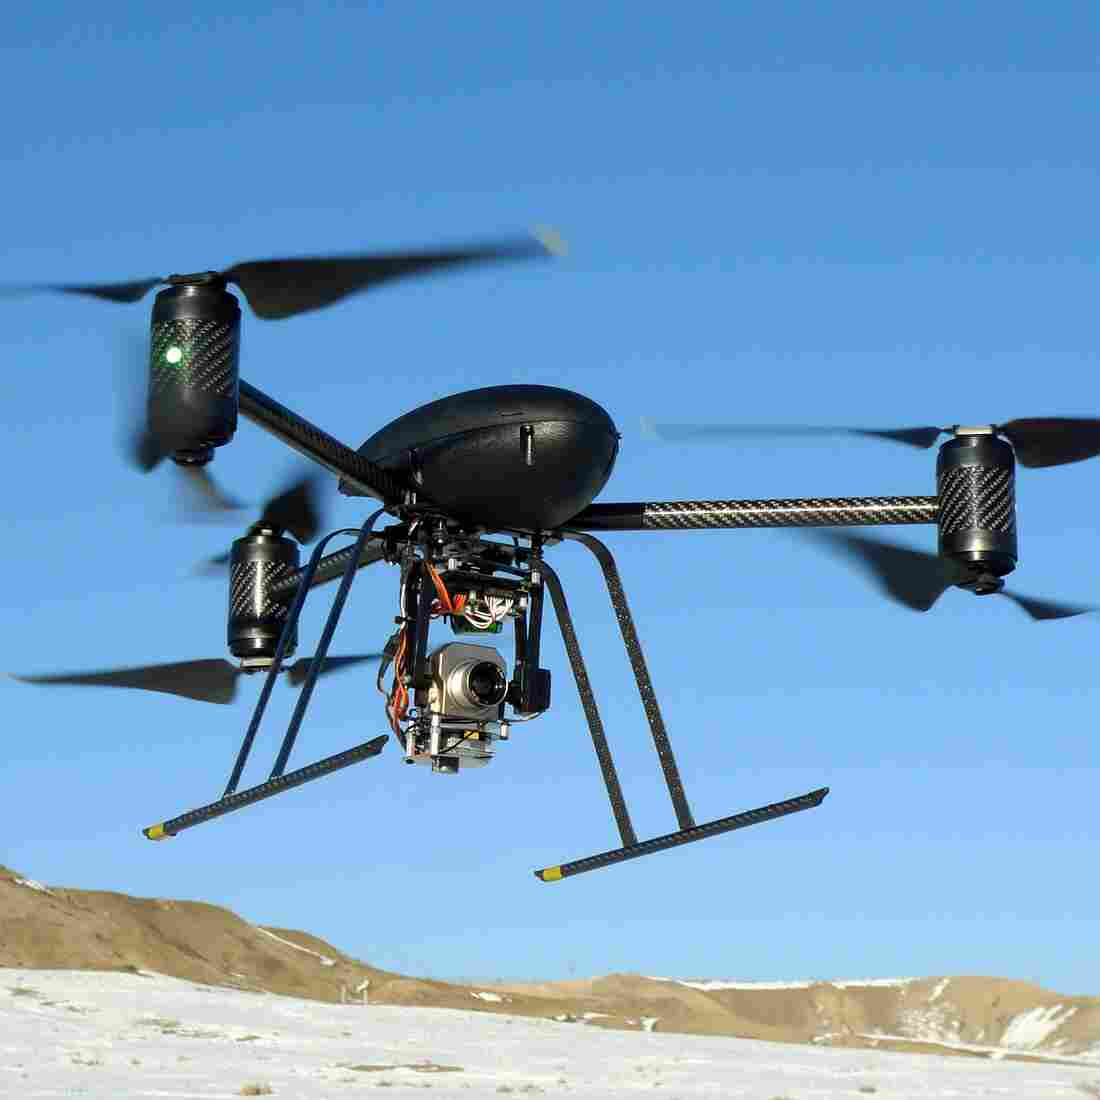 A small Draganflyer X6 drone on a test flight in Mesa County, Colo. Several police departments around the country are experimenting with using drones, but critics are concerned about potential privacy violations.